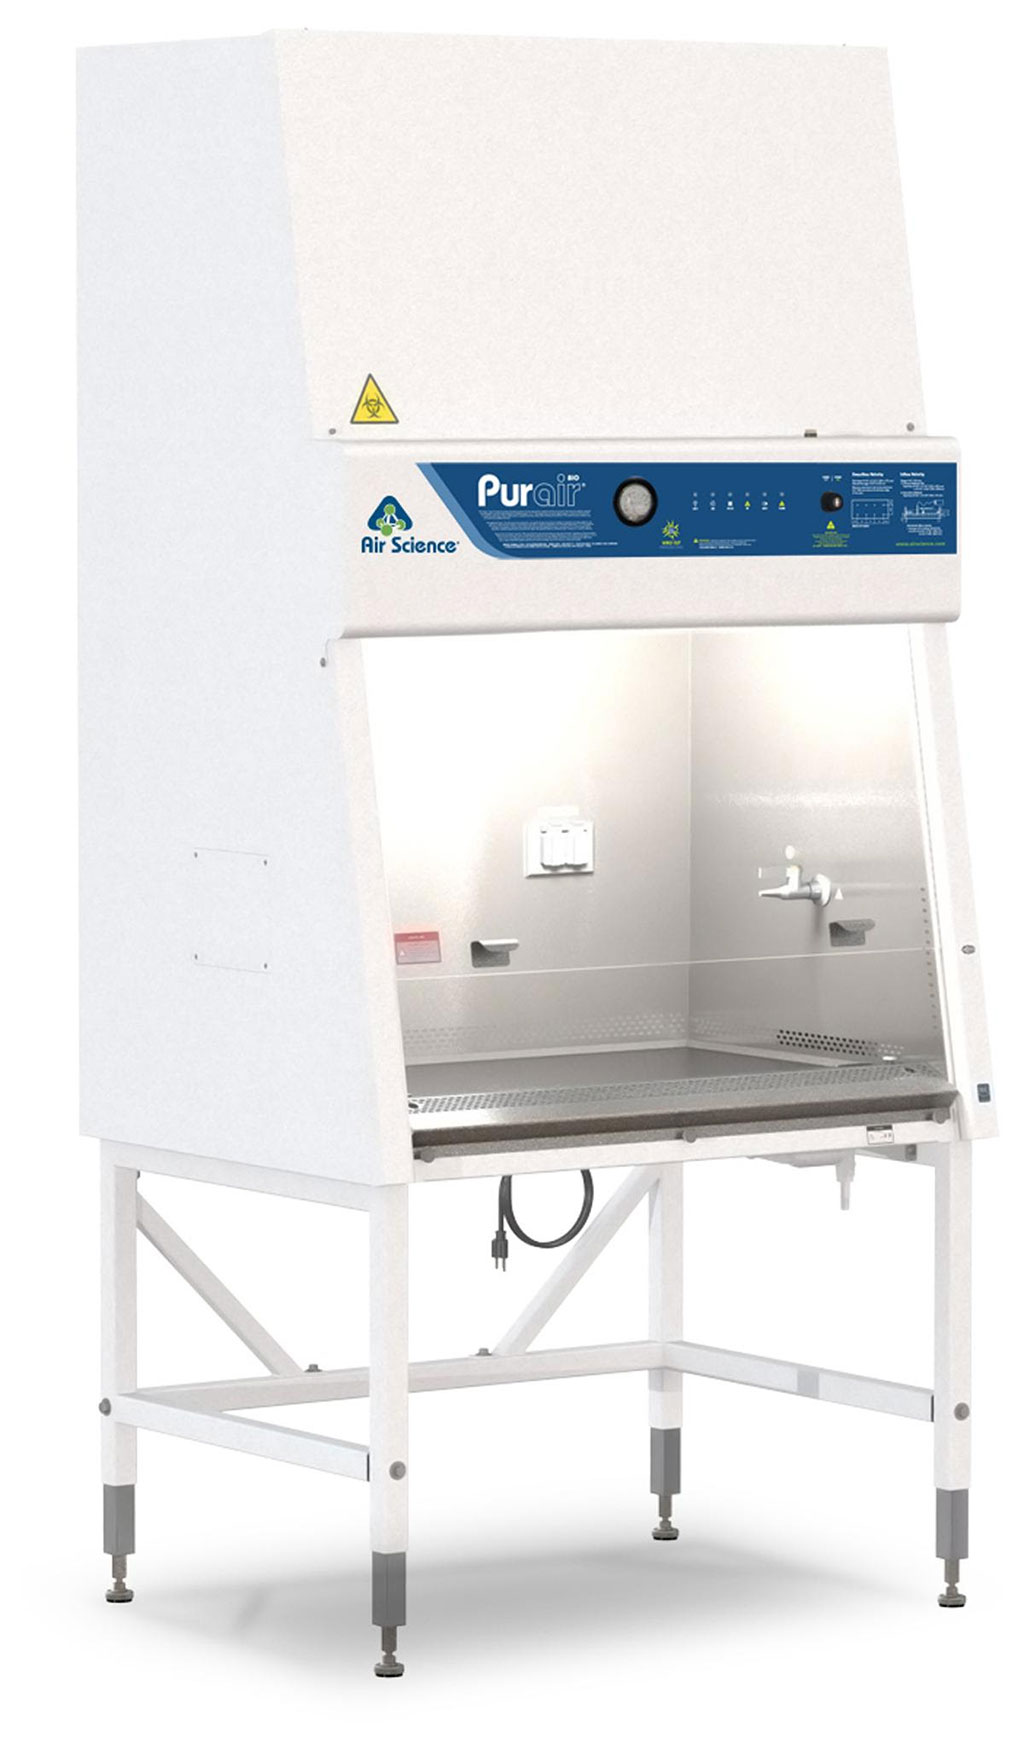 Image: The Purair® BIO biological safety cabinet (Photo courtesy of Air Science)